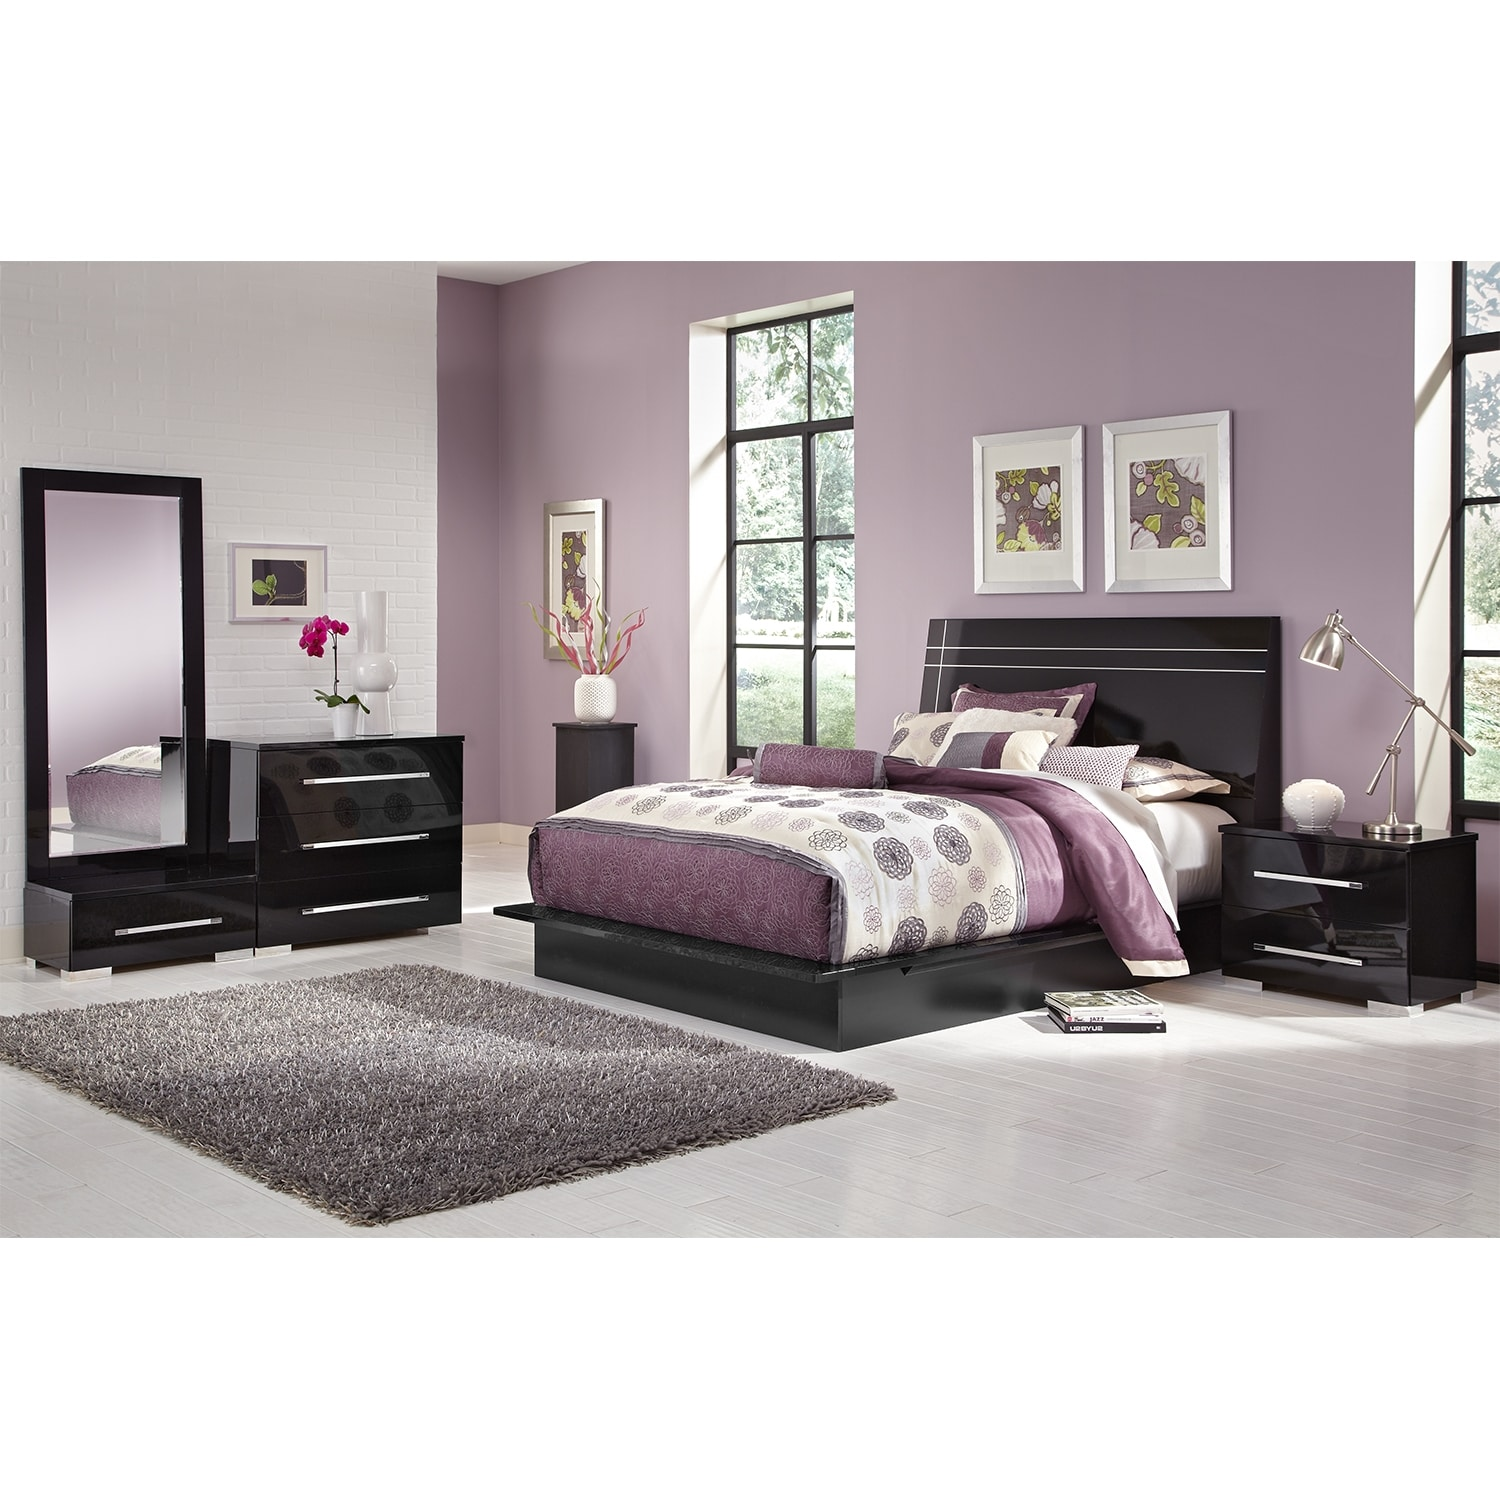 Furniture Com: Dimora 6-Piece King Panel Bedroom Set - Black